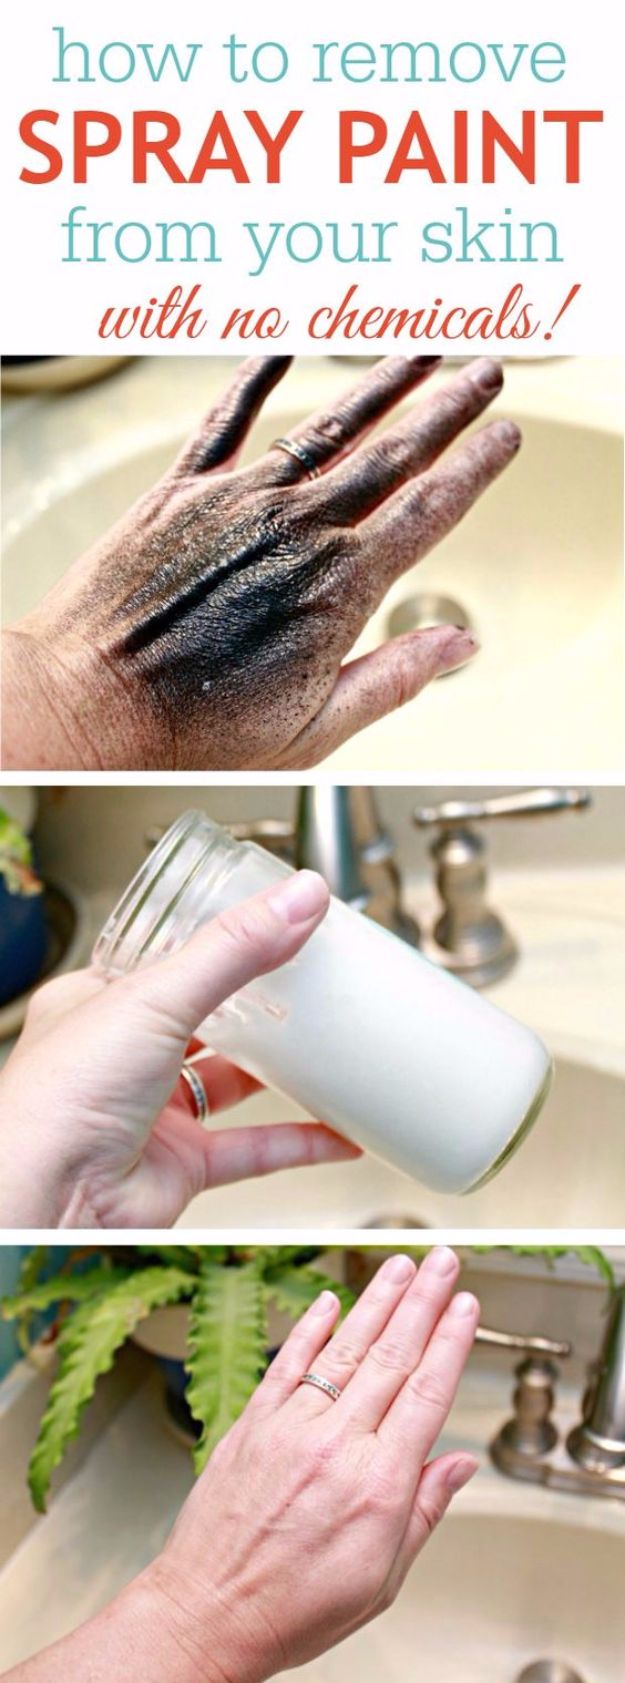 Spray Painting Tips and Tricks - Remove Spray Paint From Your Skn With No Chemicals - Home Improvement Ideas and Tutorials for Spray Painting Furniture, House, Doors, Trim, Windows and Walls - Step by Step Tutorials and Best How To Instructions - DIY Projects and Crafts by DIY JOY #diyideas